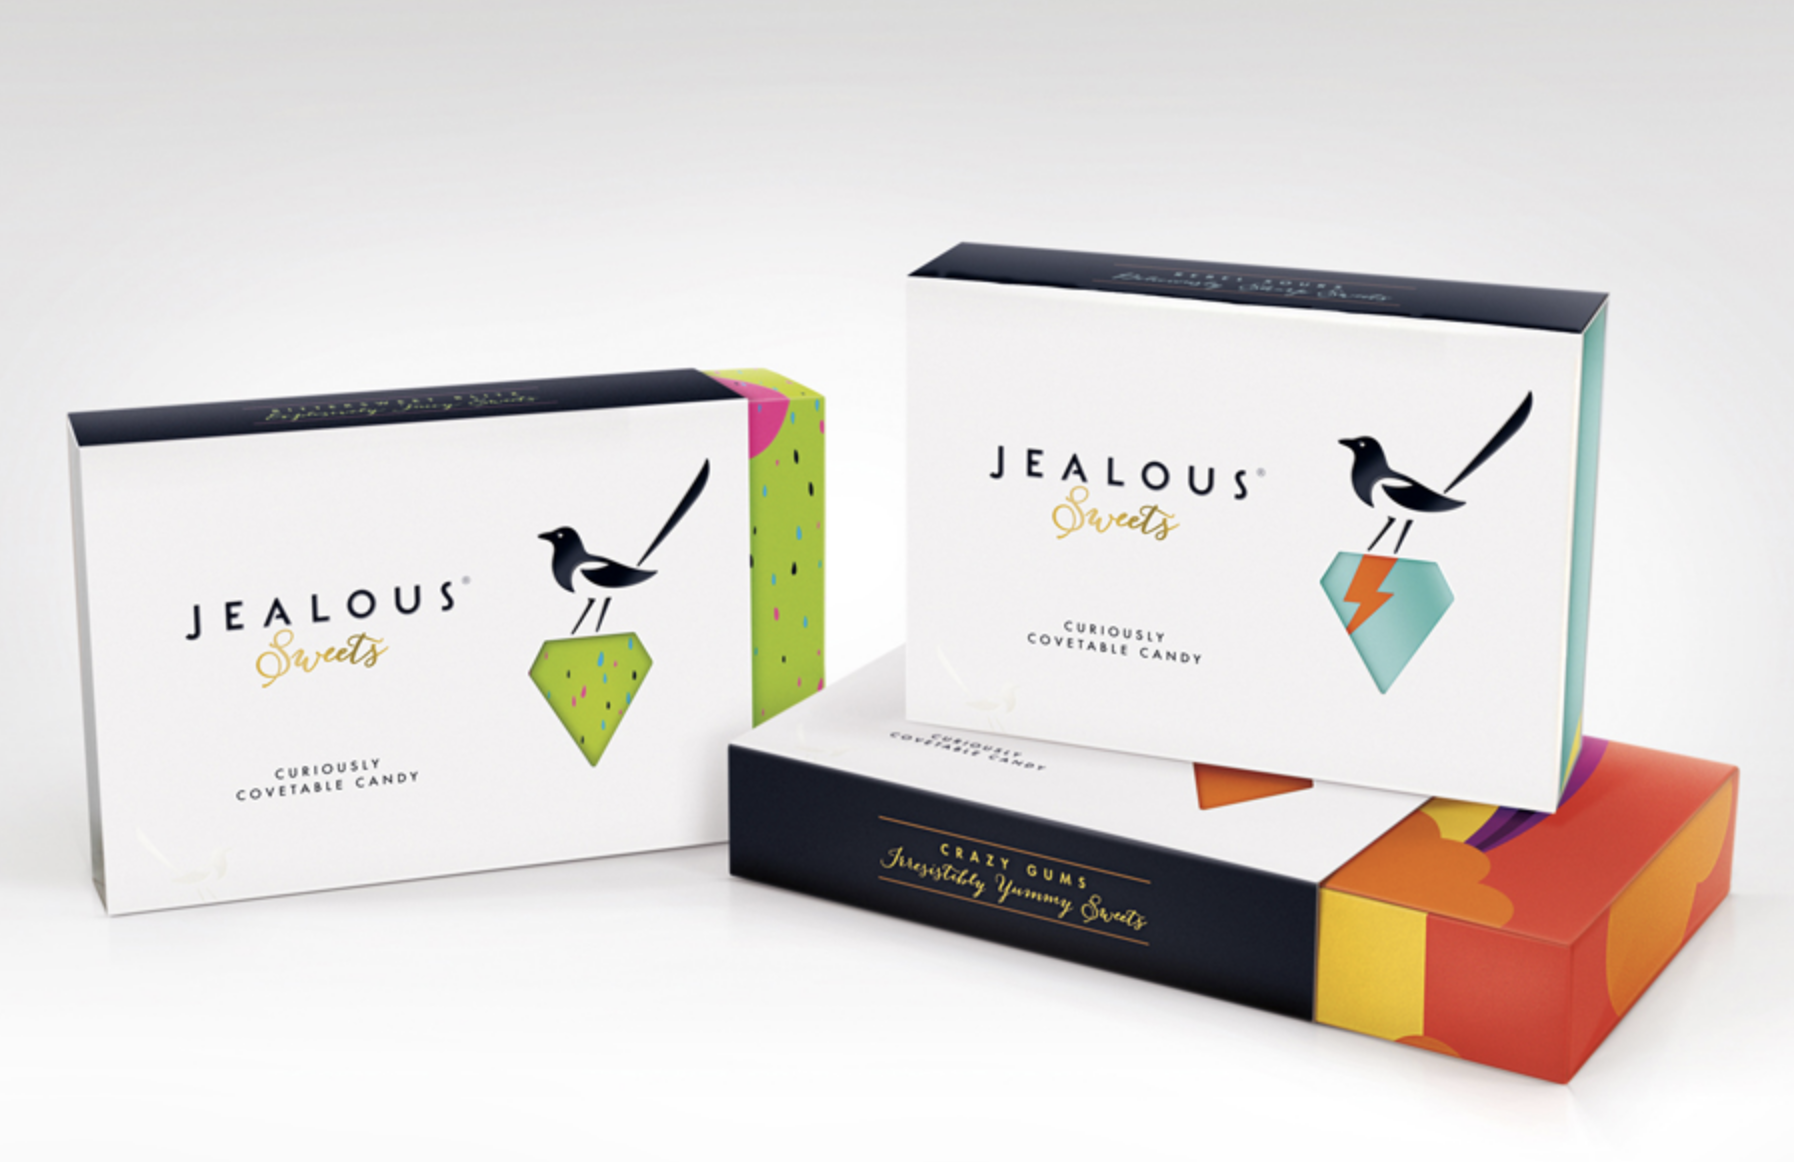 Packaging marque Jealous 1